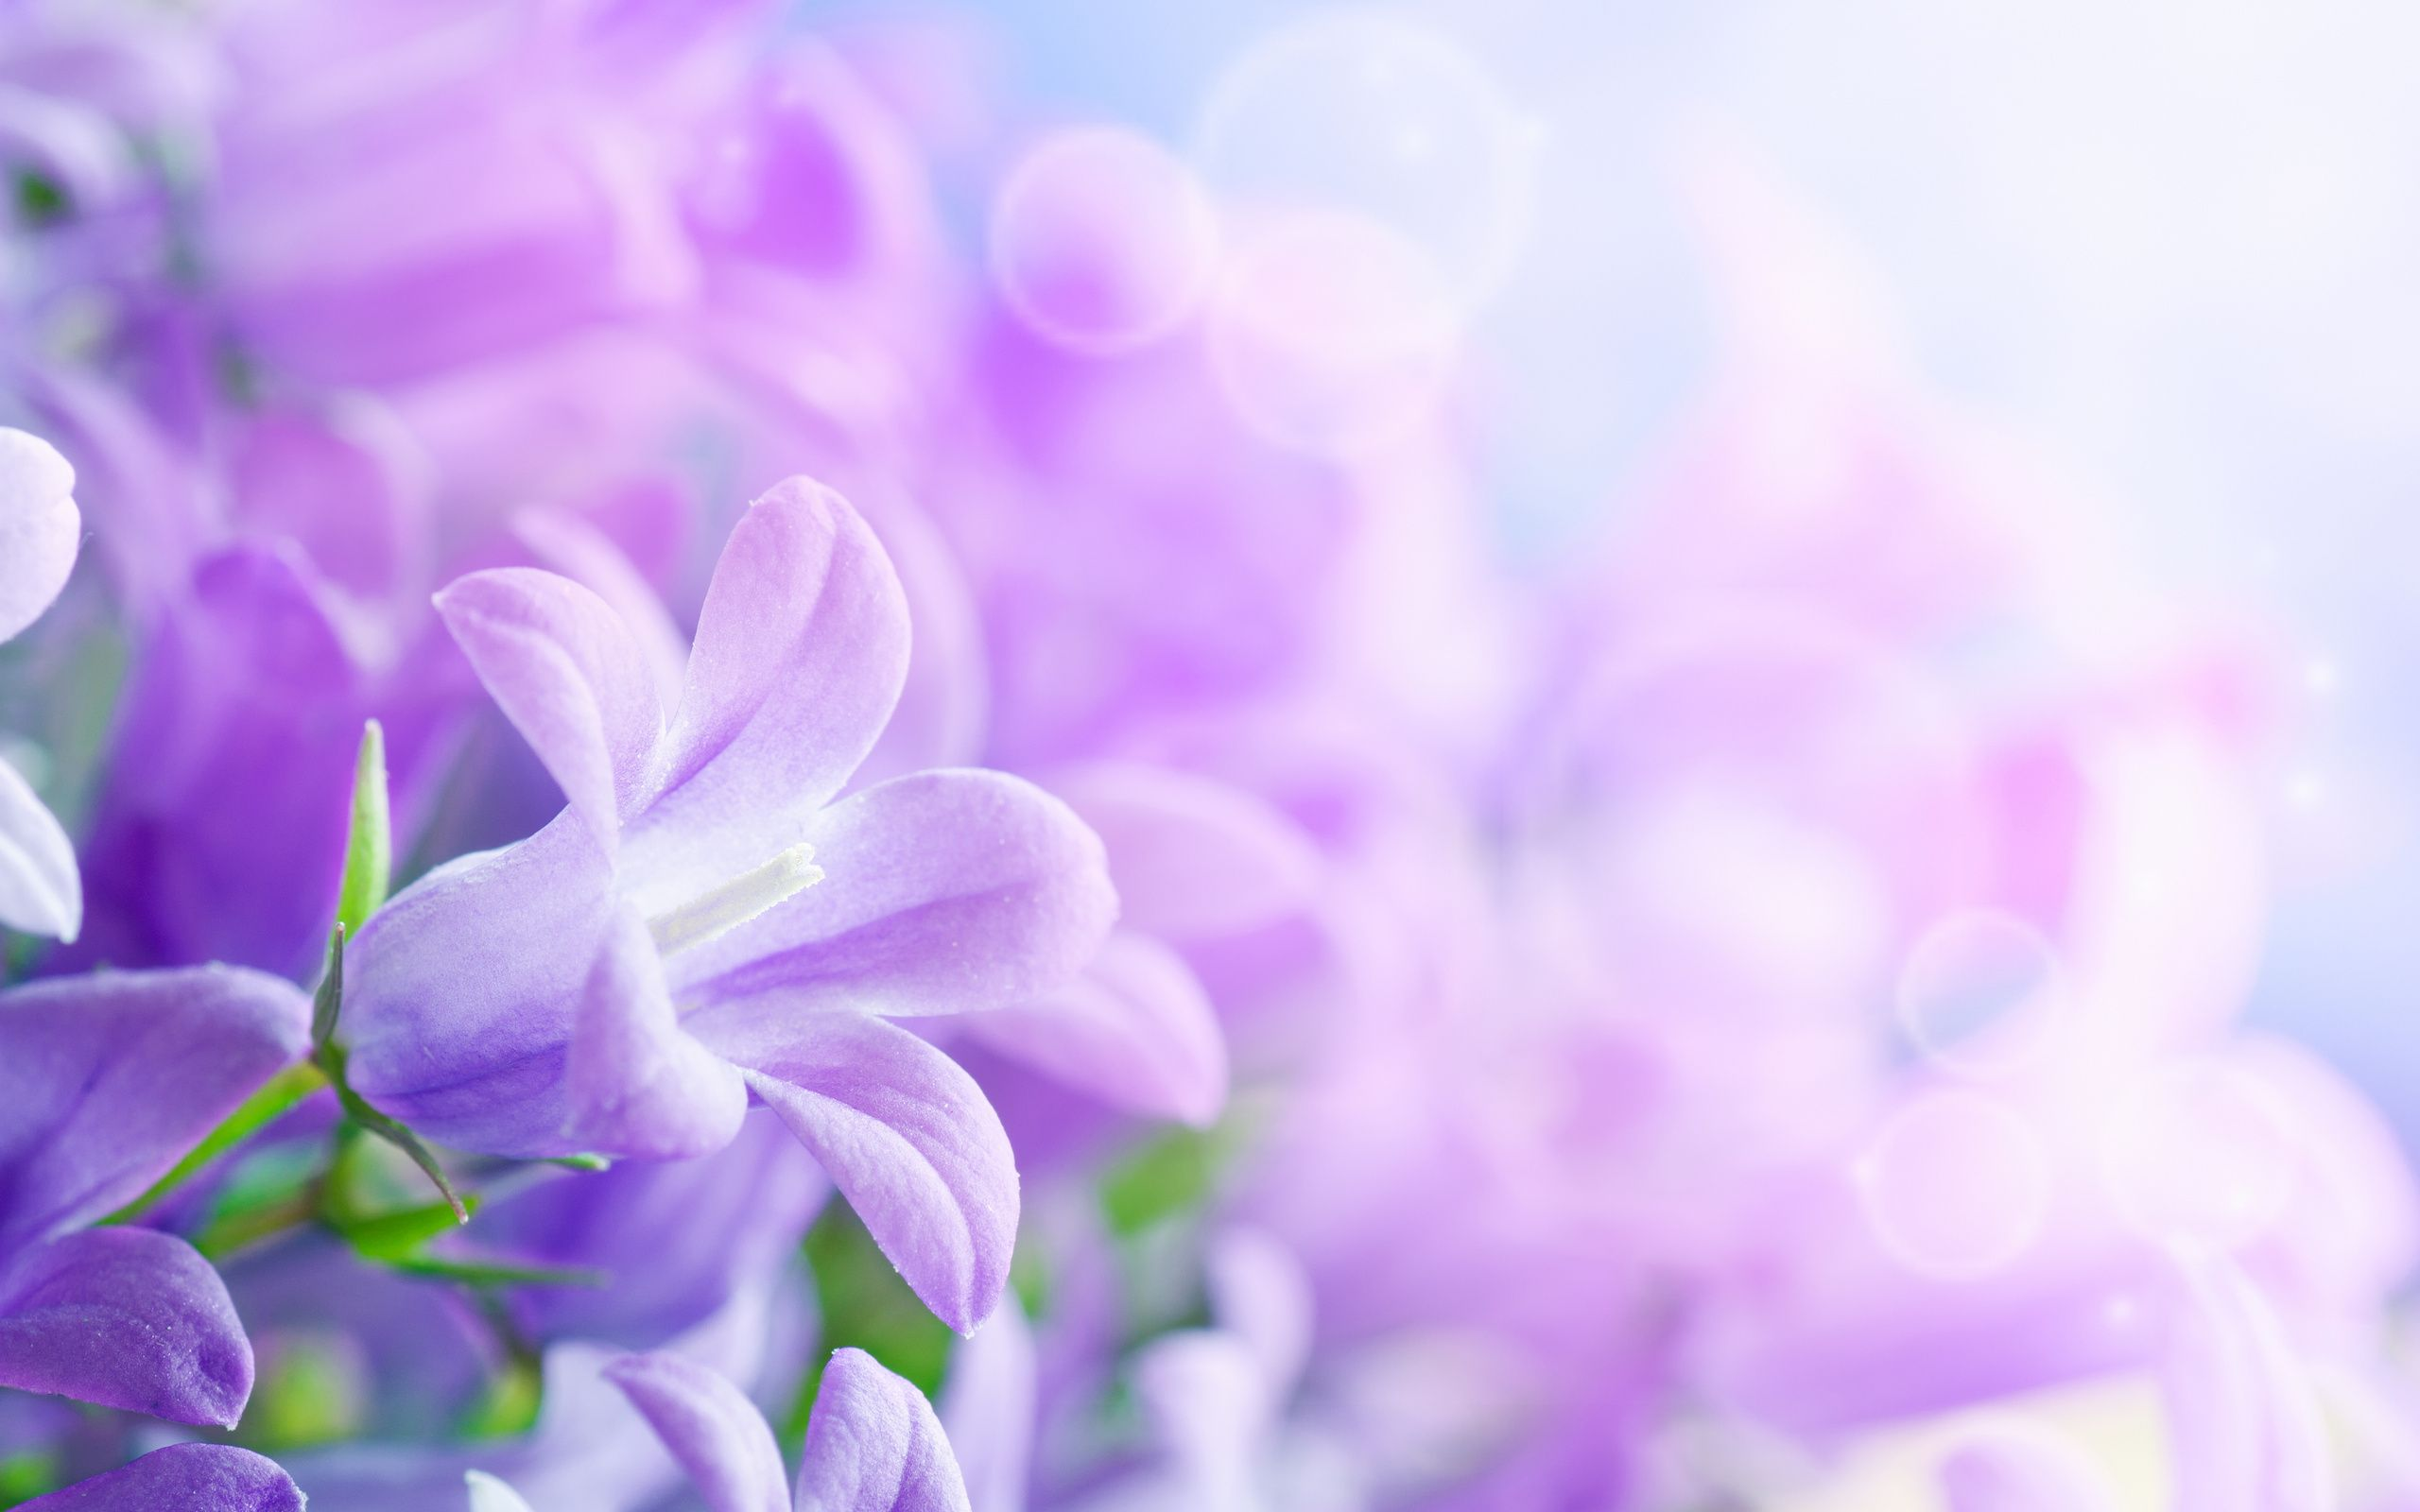 Beautiful purple flower wallpapers high quality resolution desktop beautiful purple flower wallpapers high quality resolution desktop wallpaper box izmirmasajfo